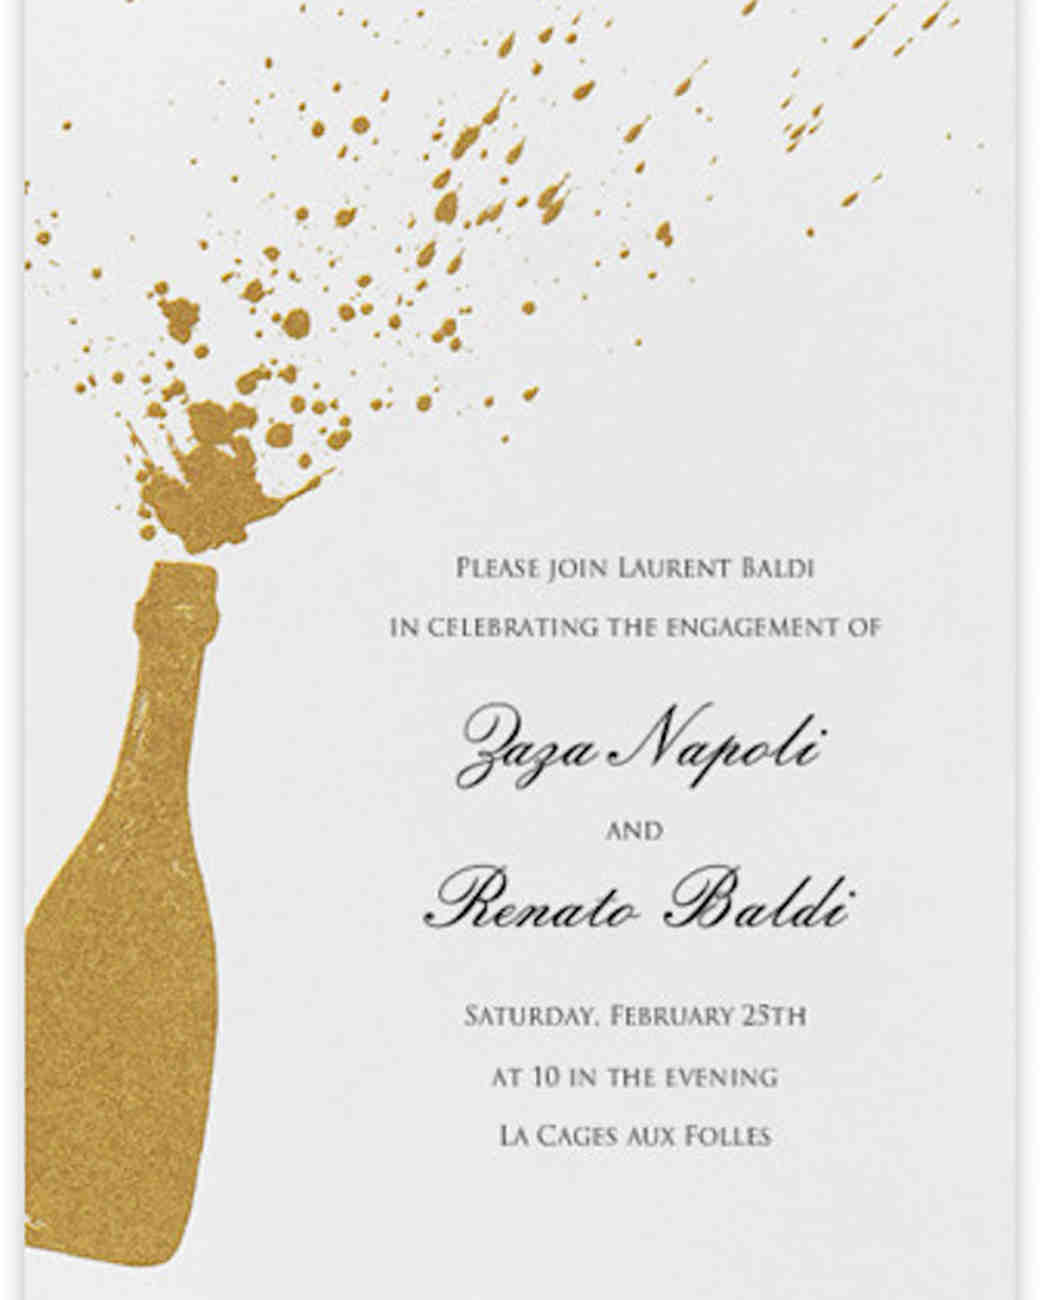 35 Paperless Engagement Party Invites – Champagne Party Invitations